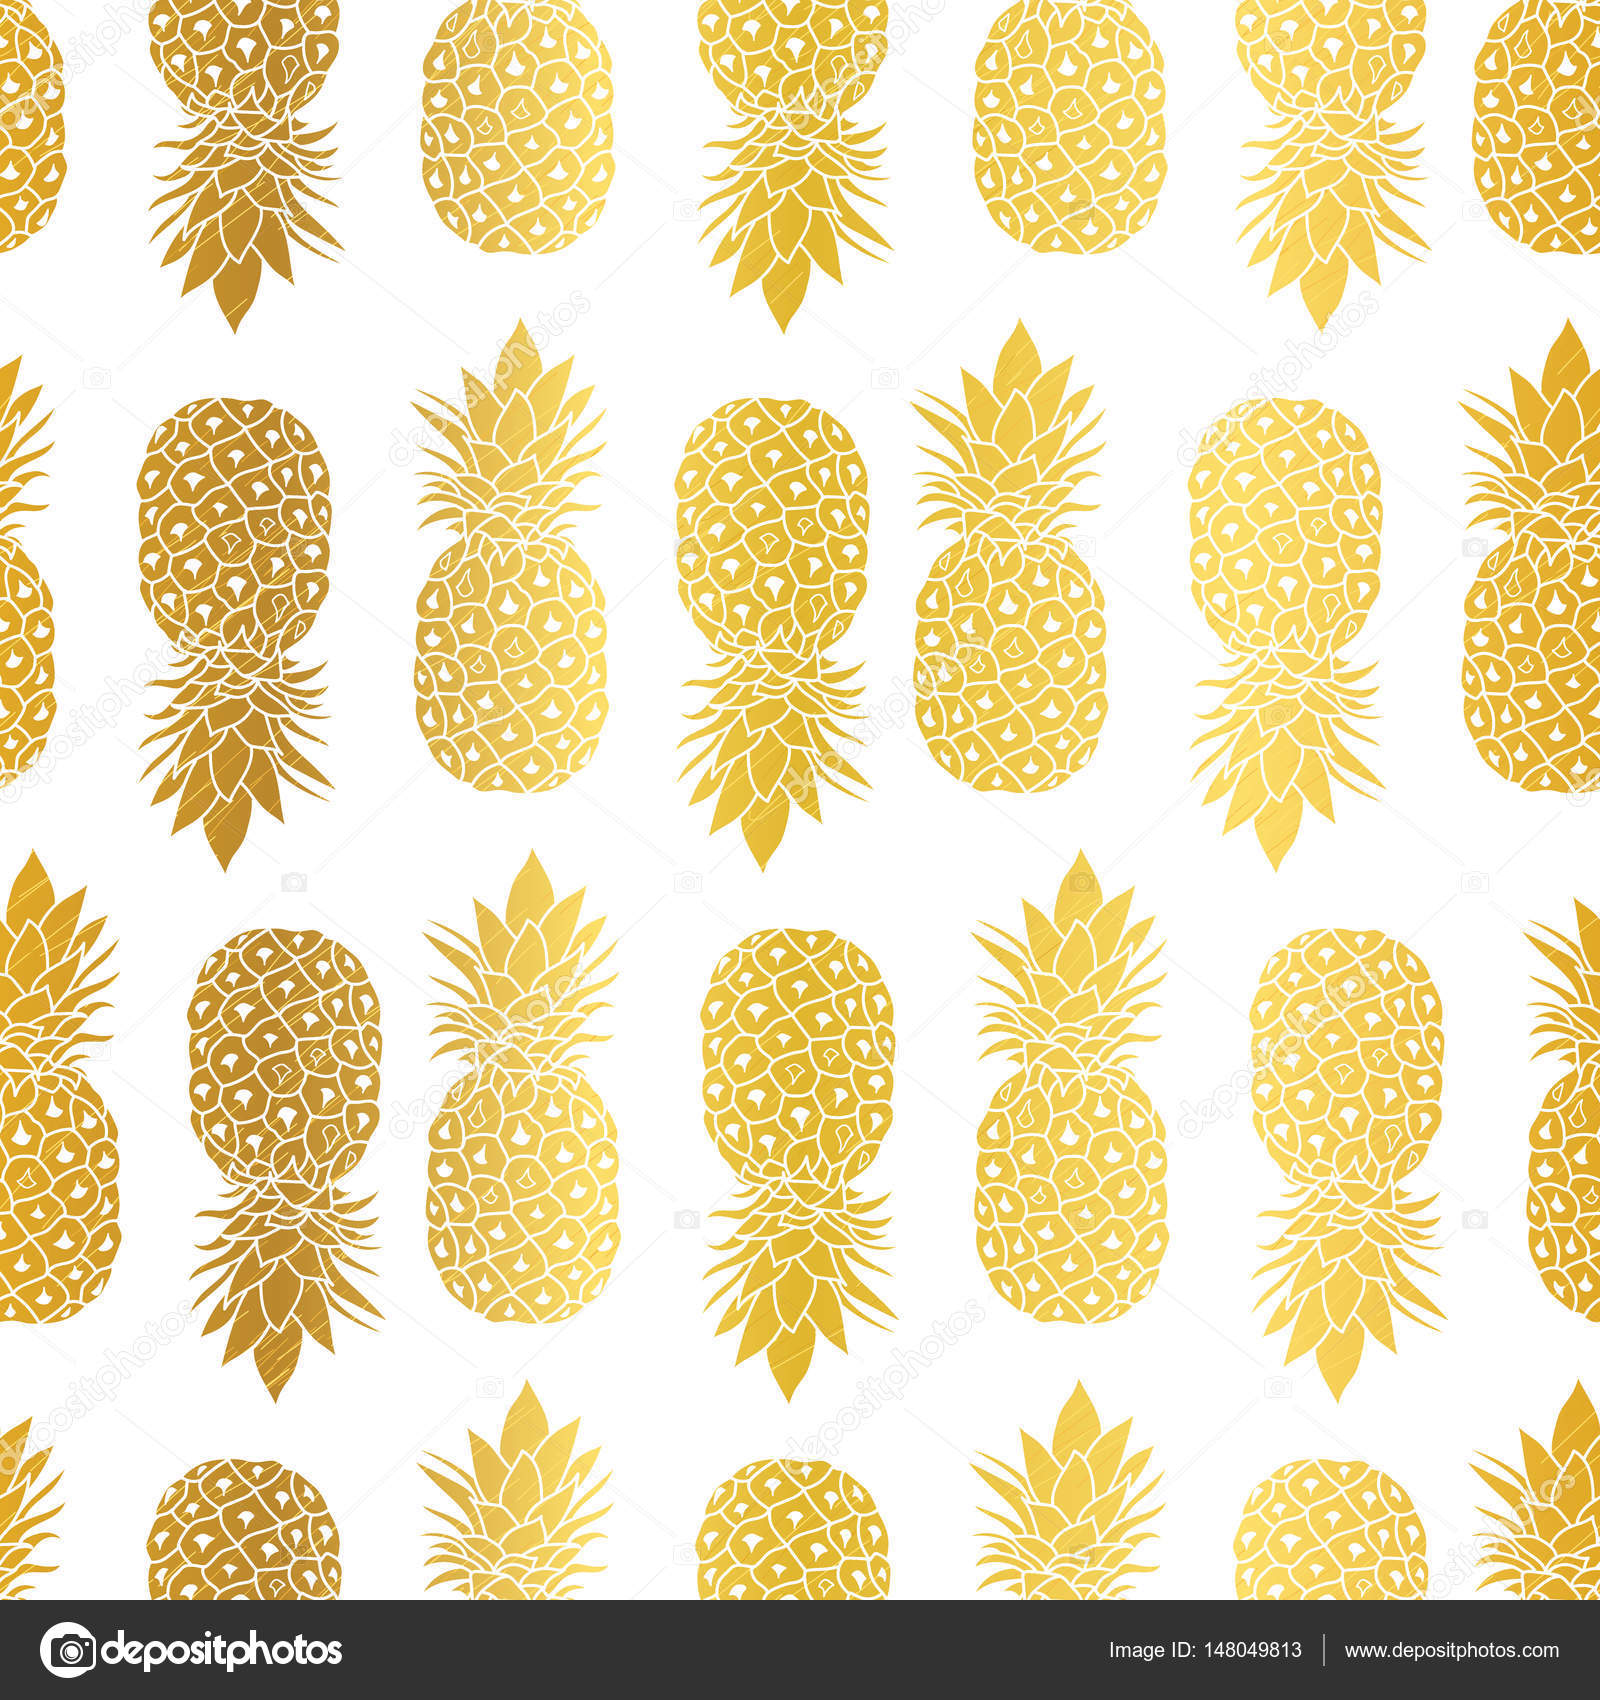 Vector Gold White Pineapples Geometric Repeat Seamless Pattrern In Color Great For Fabric Packaging Wallpaper Invitations